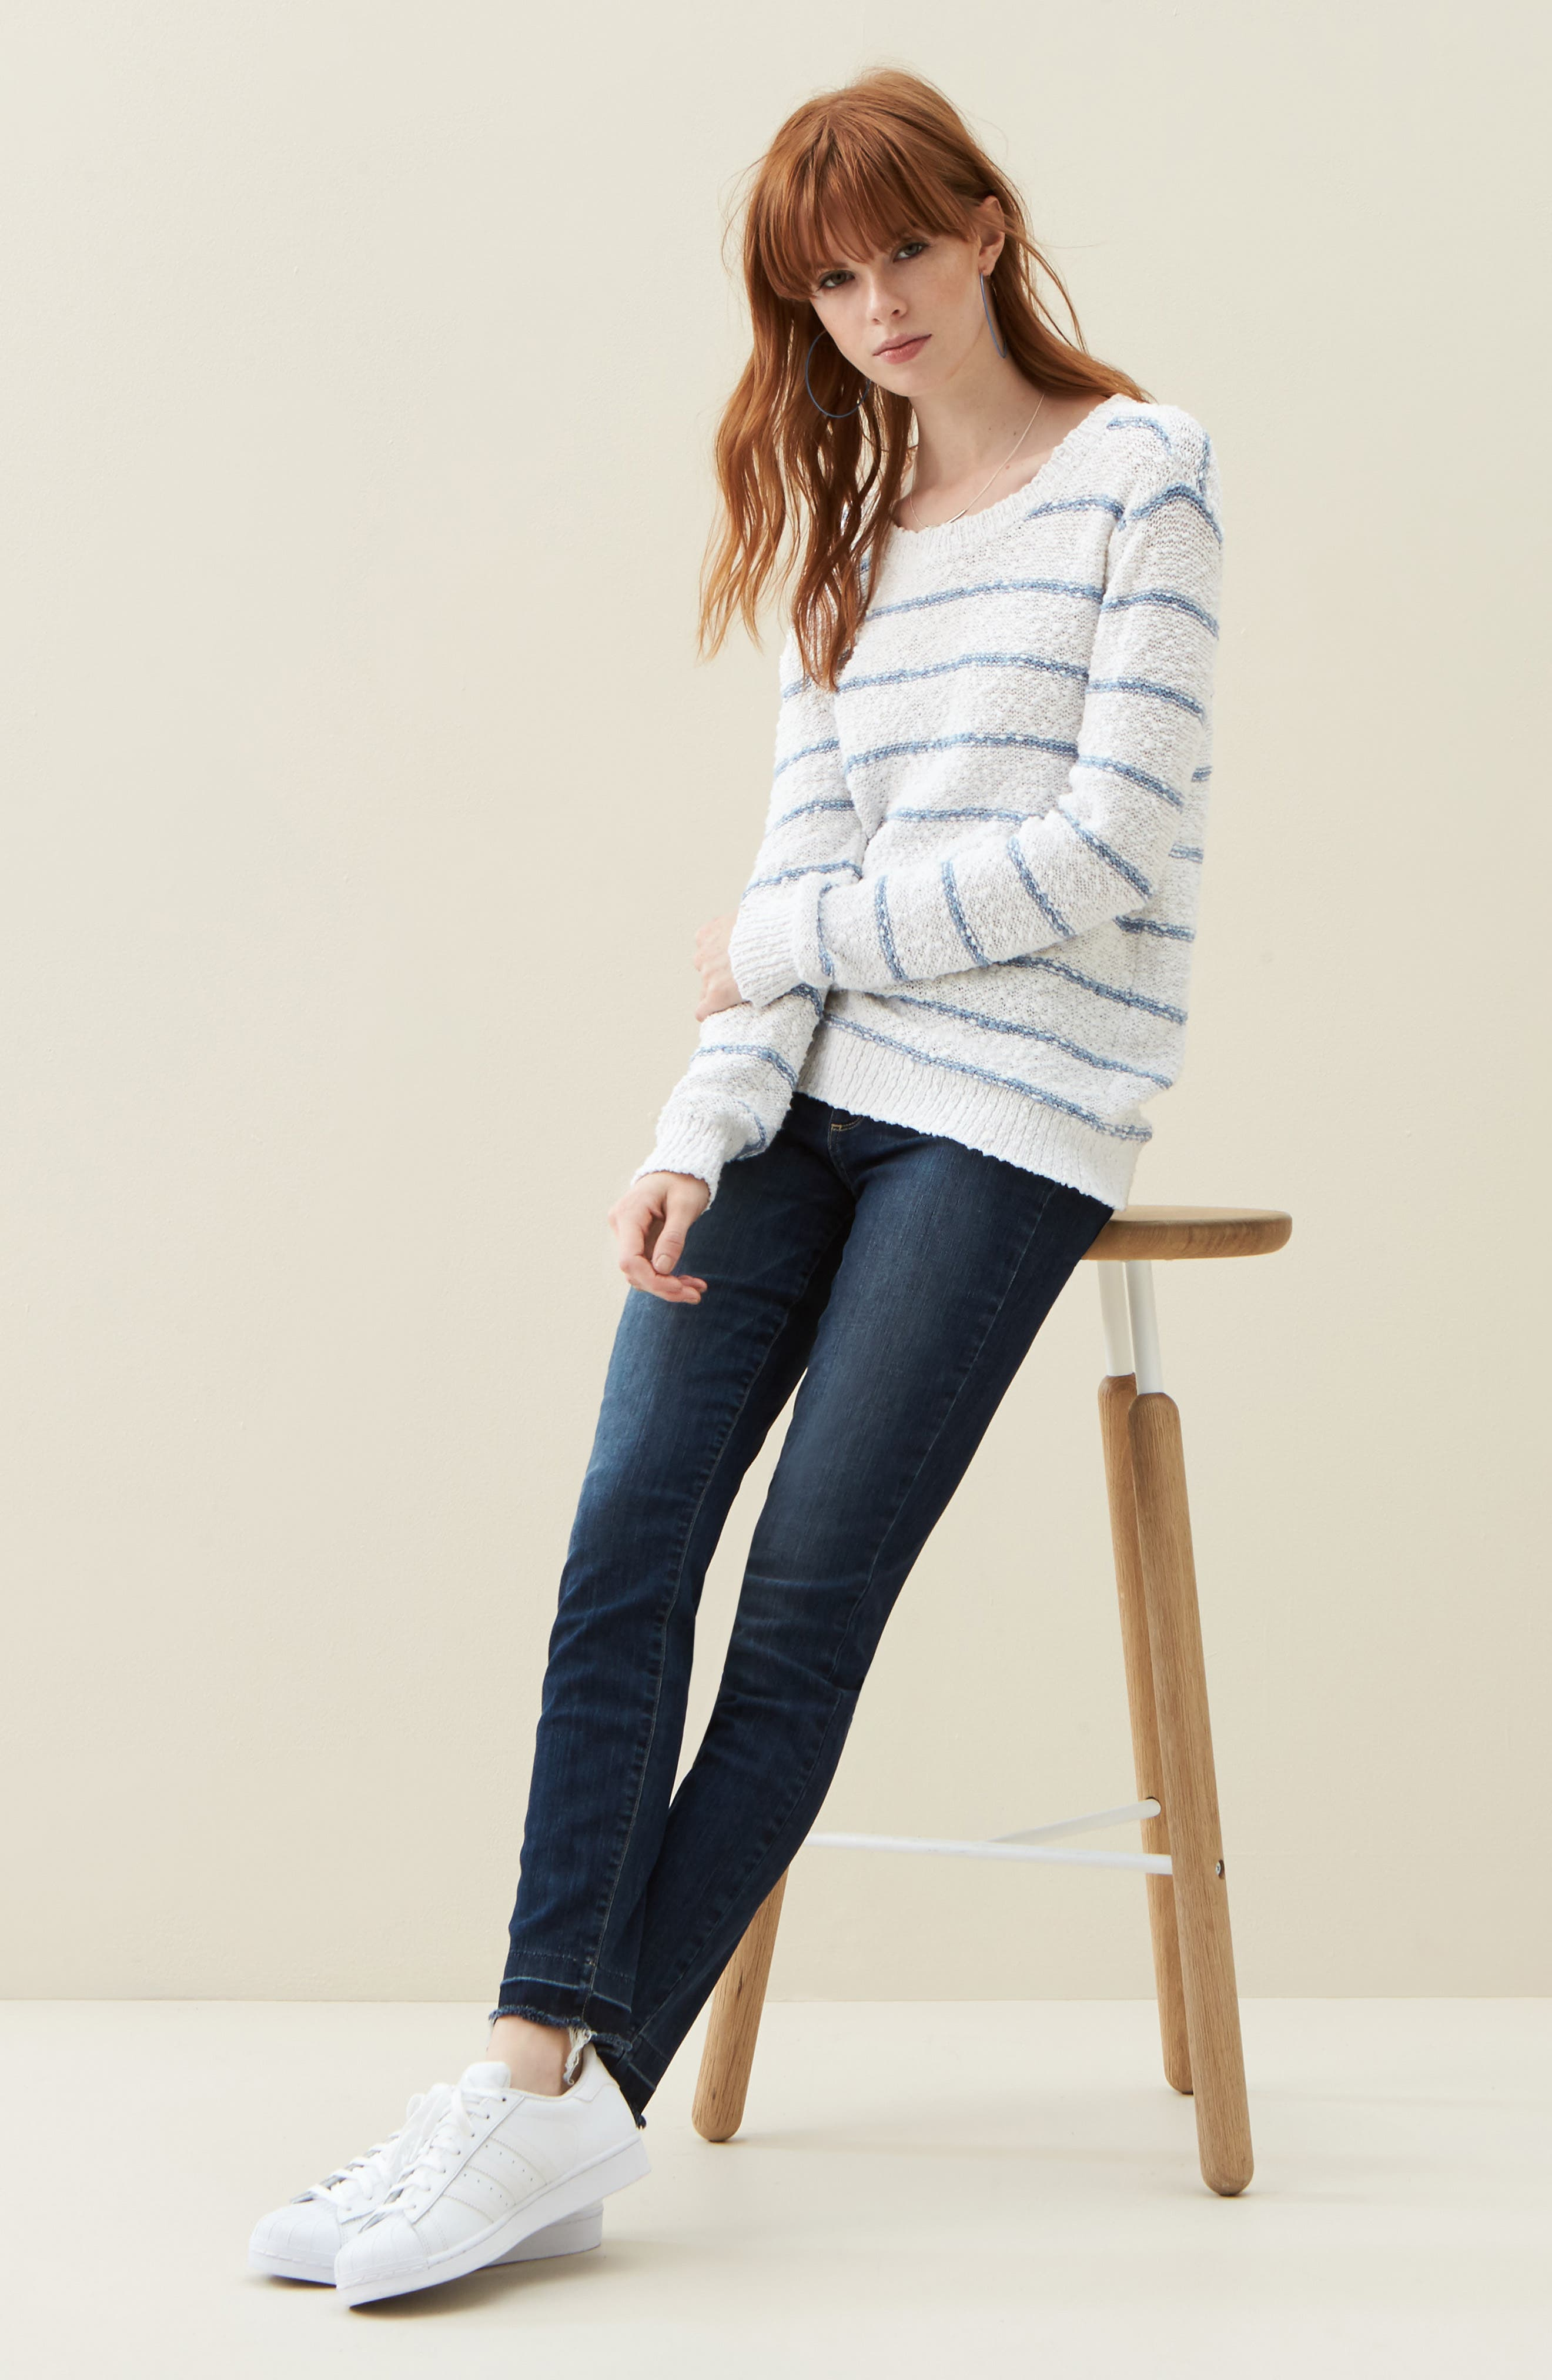 PAIGE Sweater & Jeans Outfit with Accessories